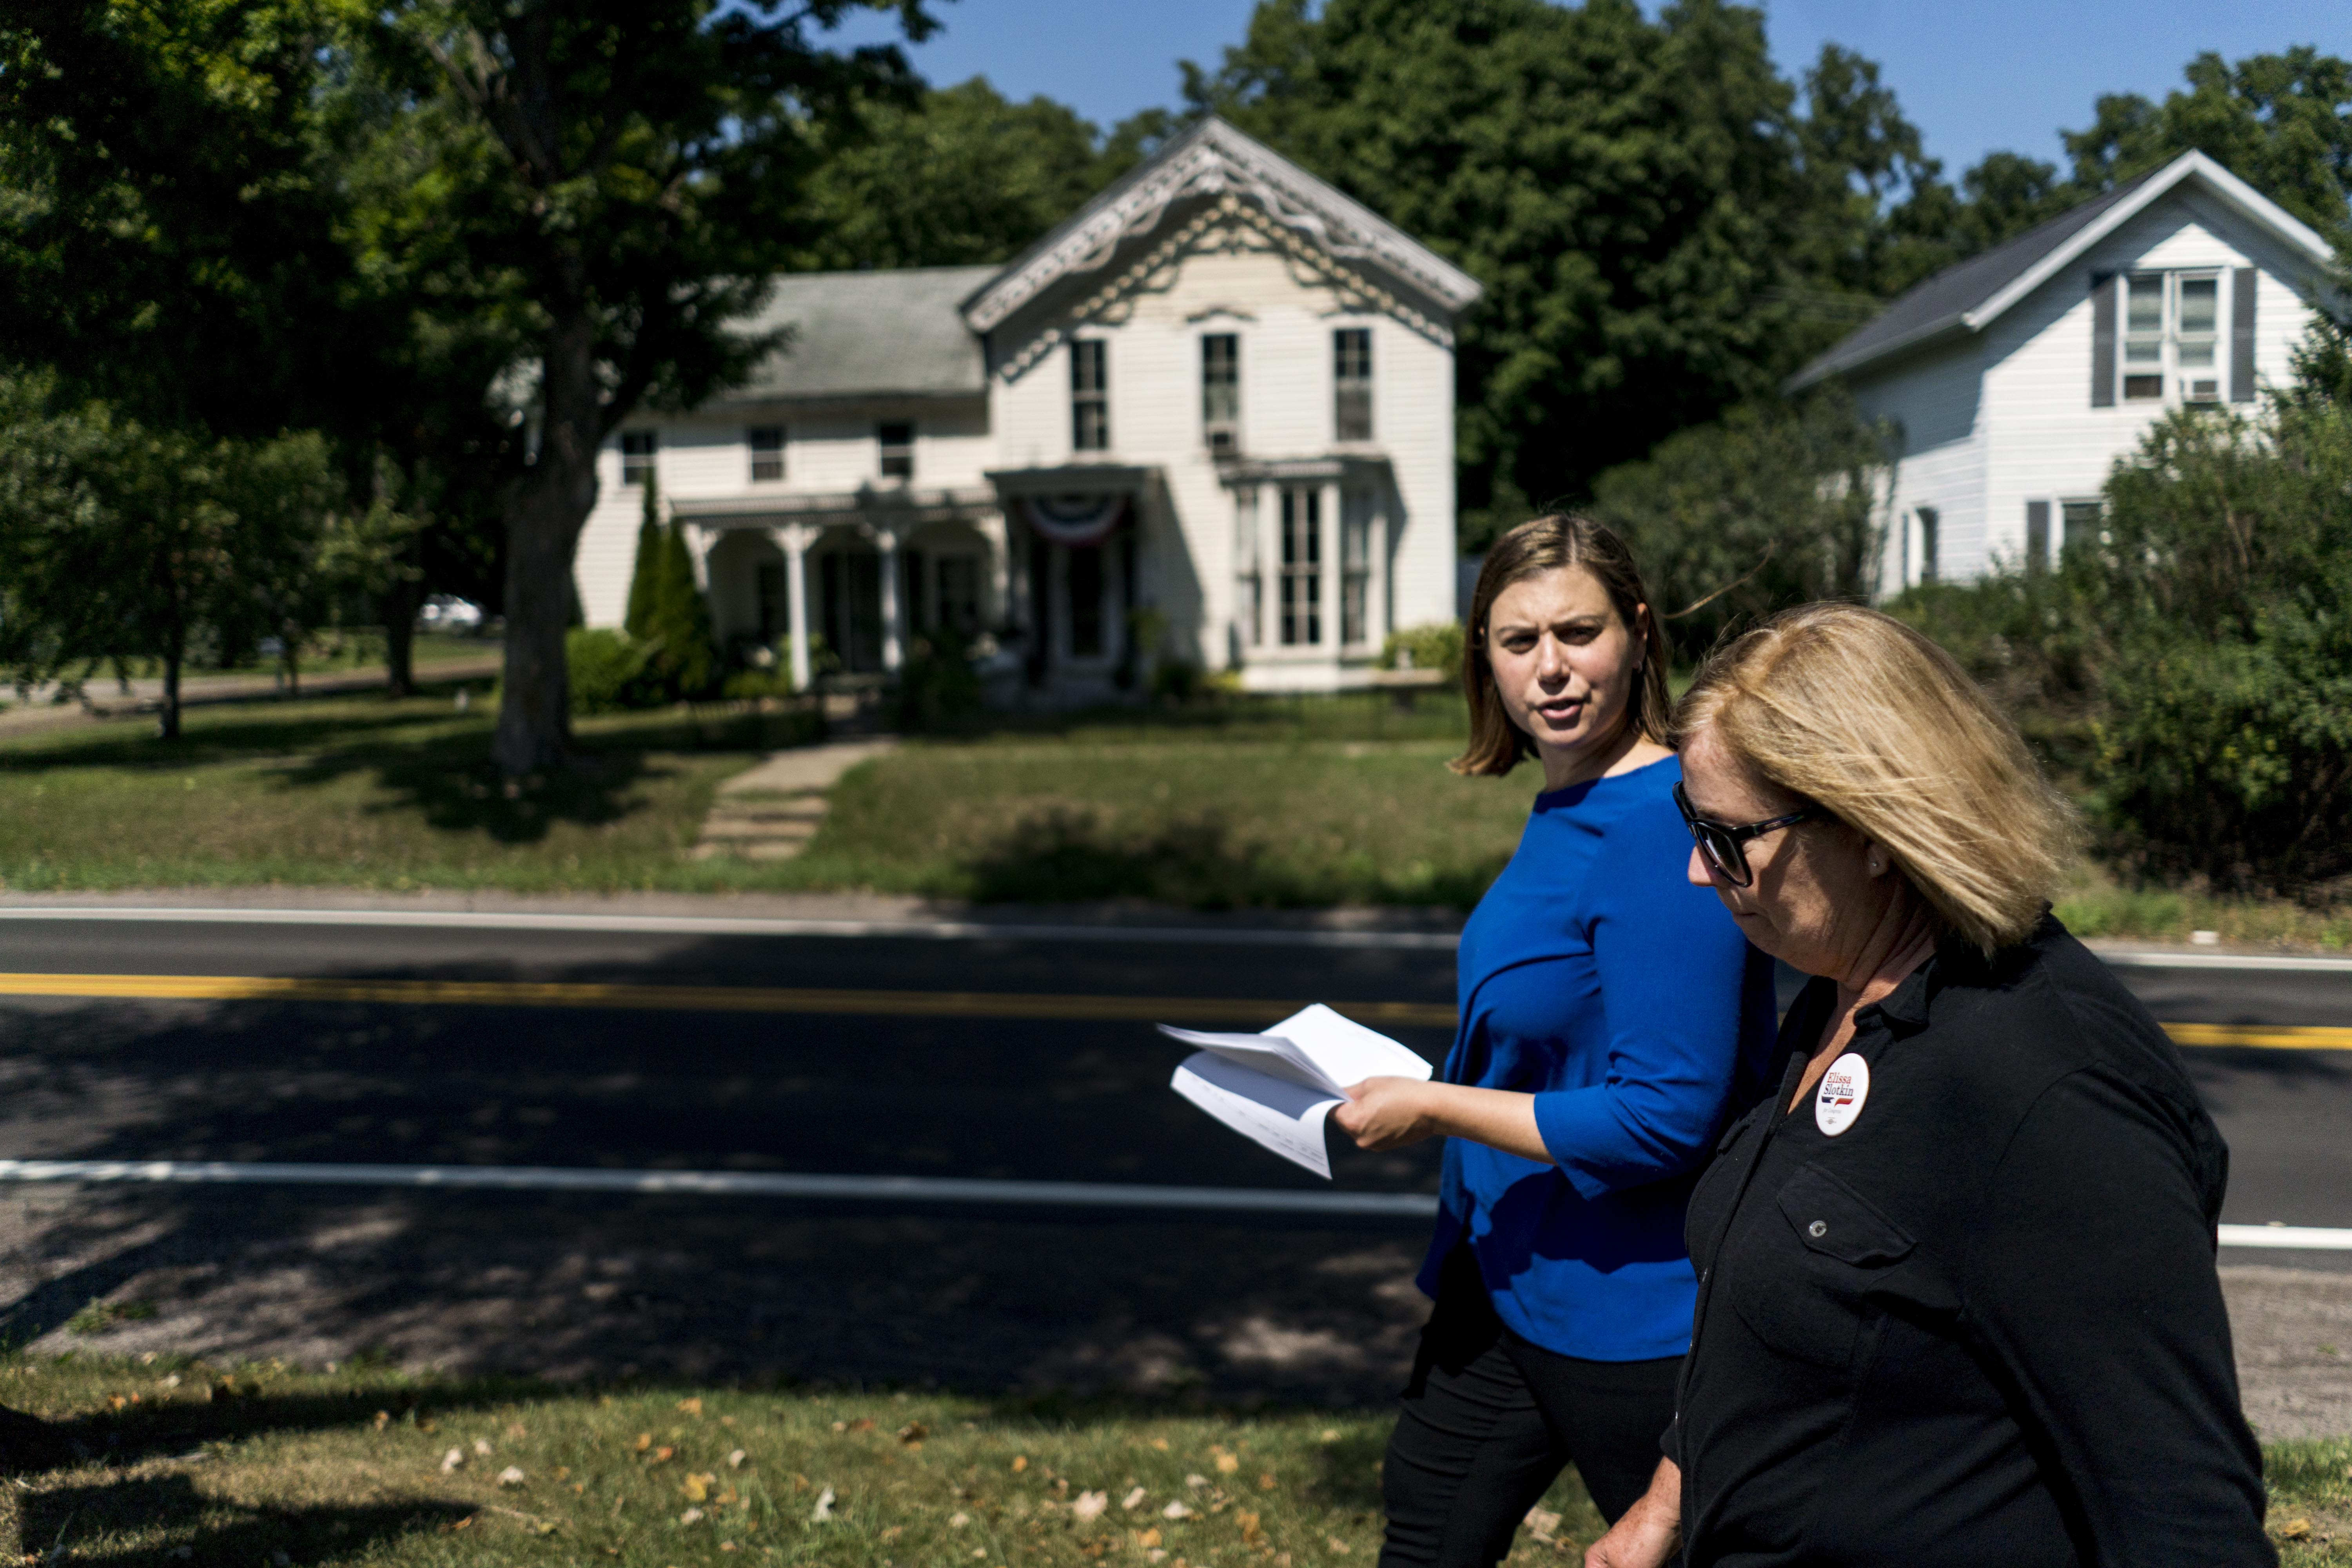 HOLLY, MICHIGAN - Elissa Slotkin, left,  Democratic candidate seeking election to the U.S. House to represent Michigan District 8, canvasses door to door with campaign volunteer Karen More near Holly, Michigan. (Photo by Melina Mara/The Washington Post --Getty Images)